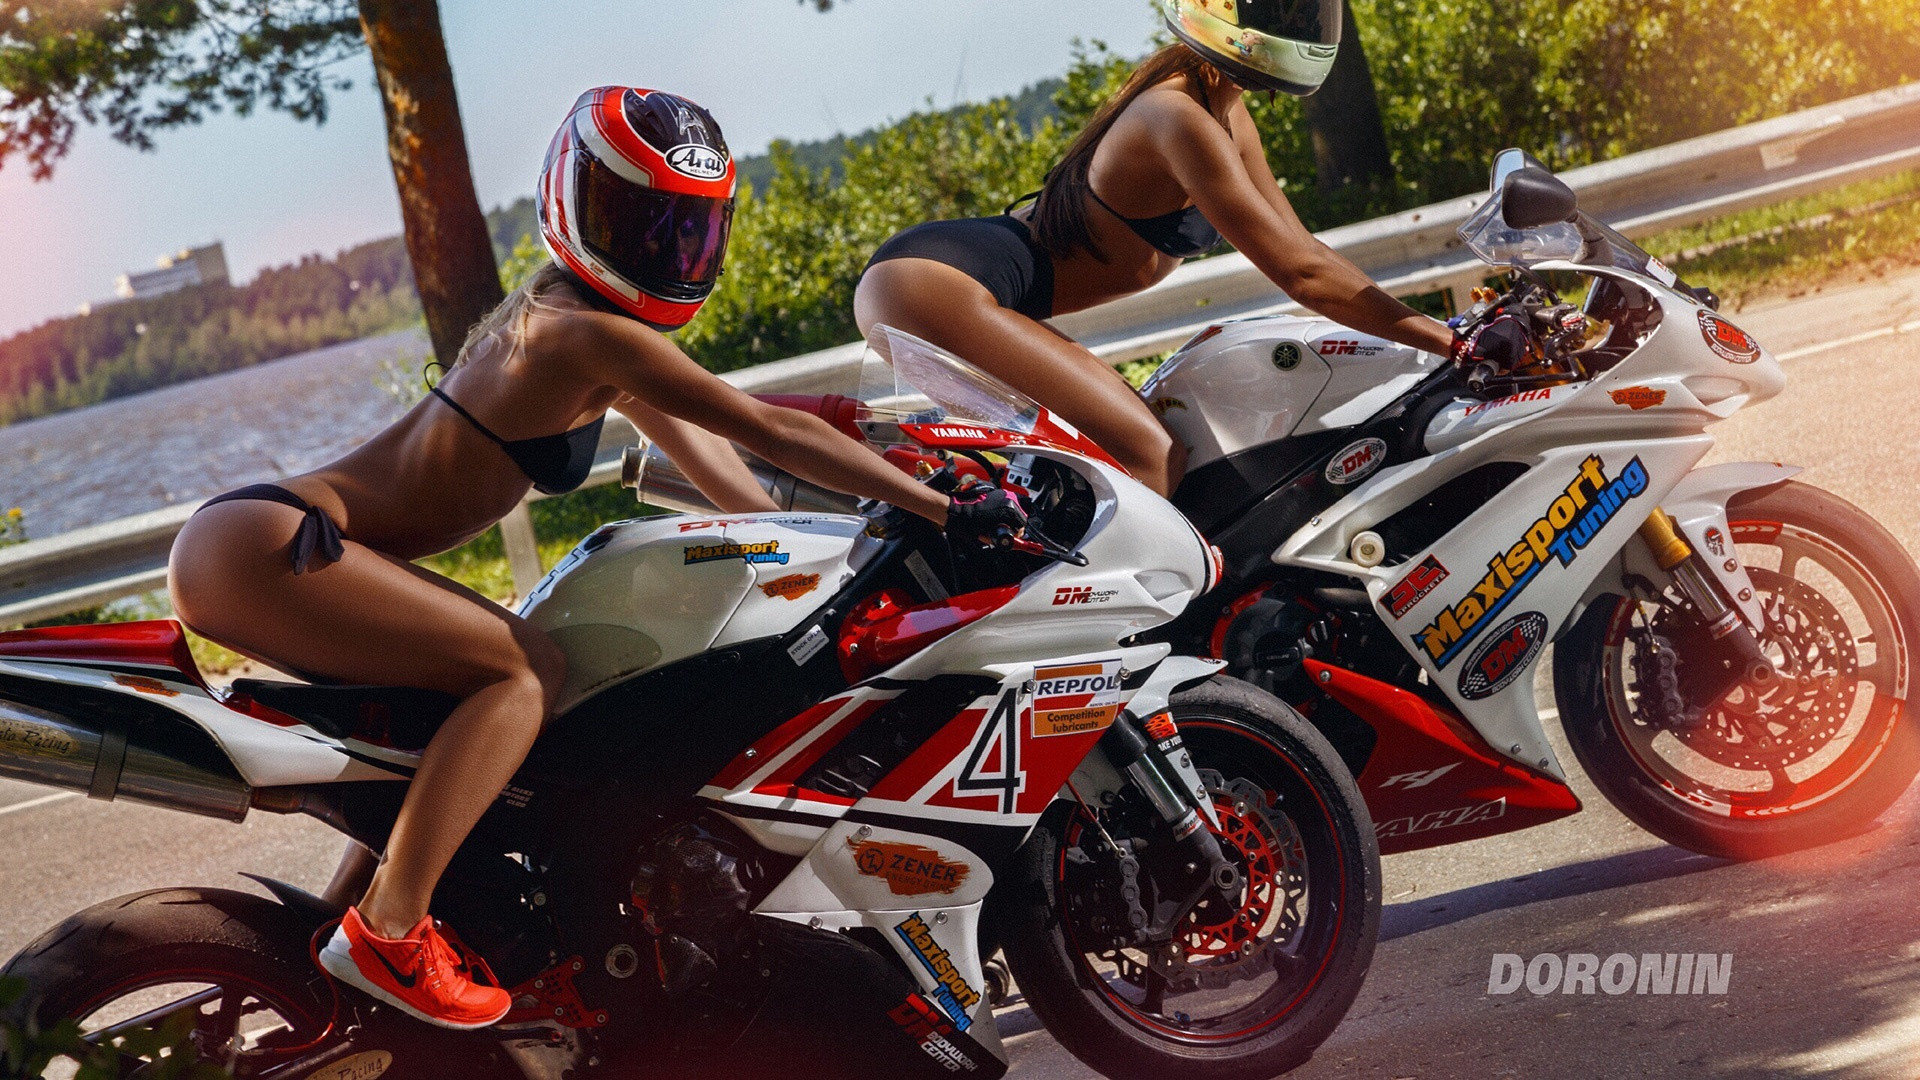 sexy swimsuite babes on bikes 1920x1080